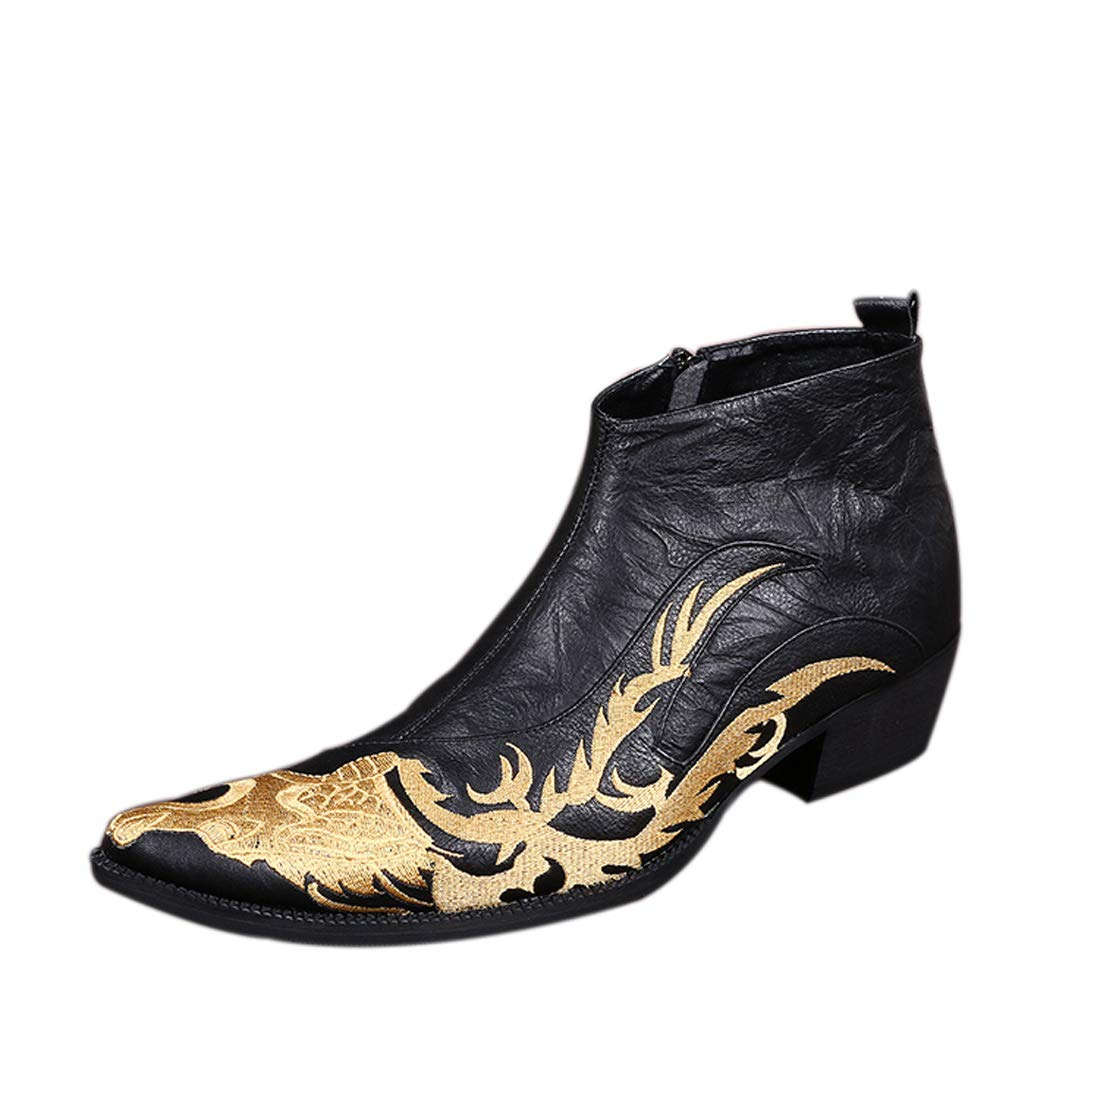 DANDANJIE Mens Novelty Shoes Fall Winter Vintage Ankle Boots Wedding Party /& Evening